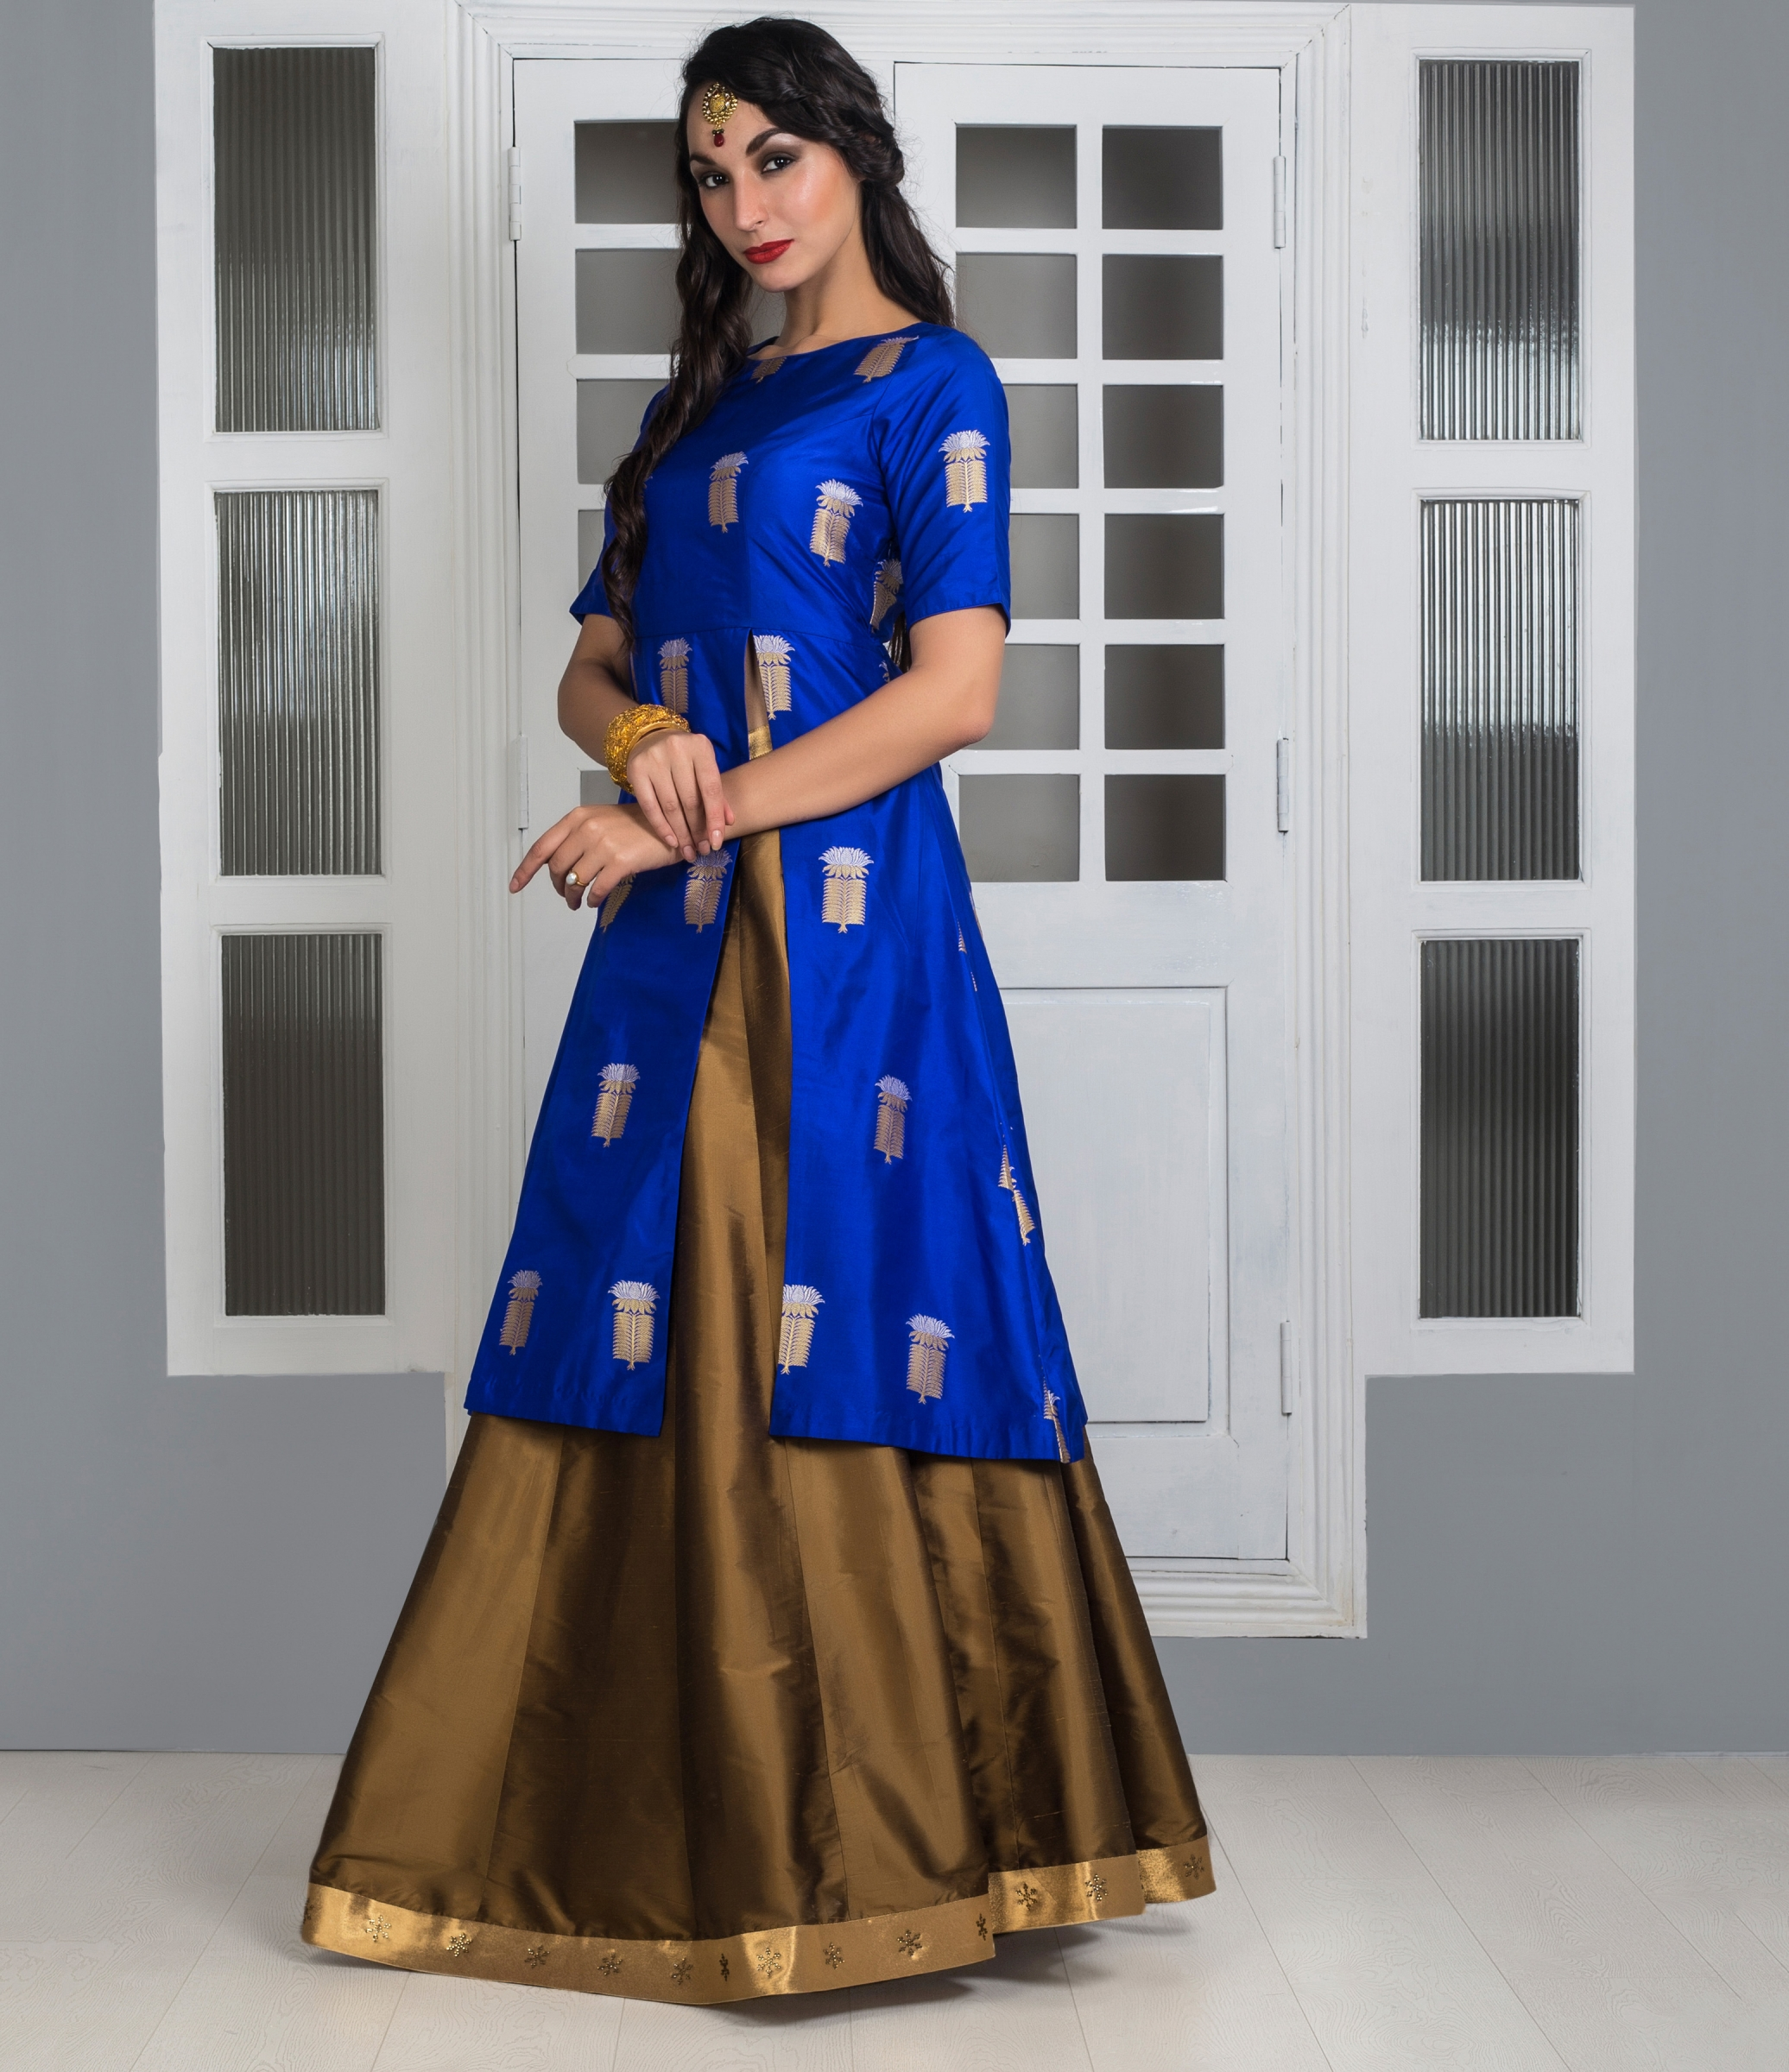 baba2ad26bc ... Lehengas · The Banaras Story · Royal blue and gold long top silk Lehenga.  1